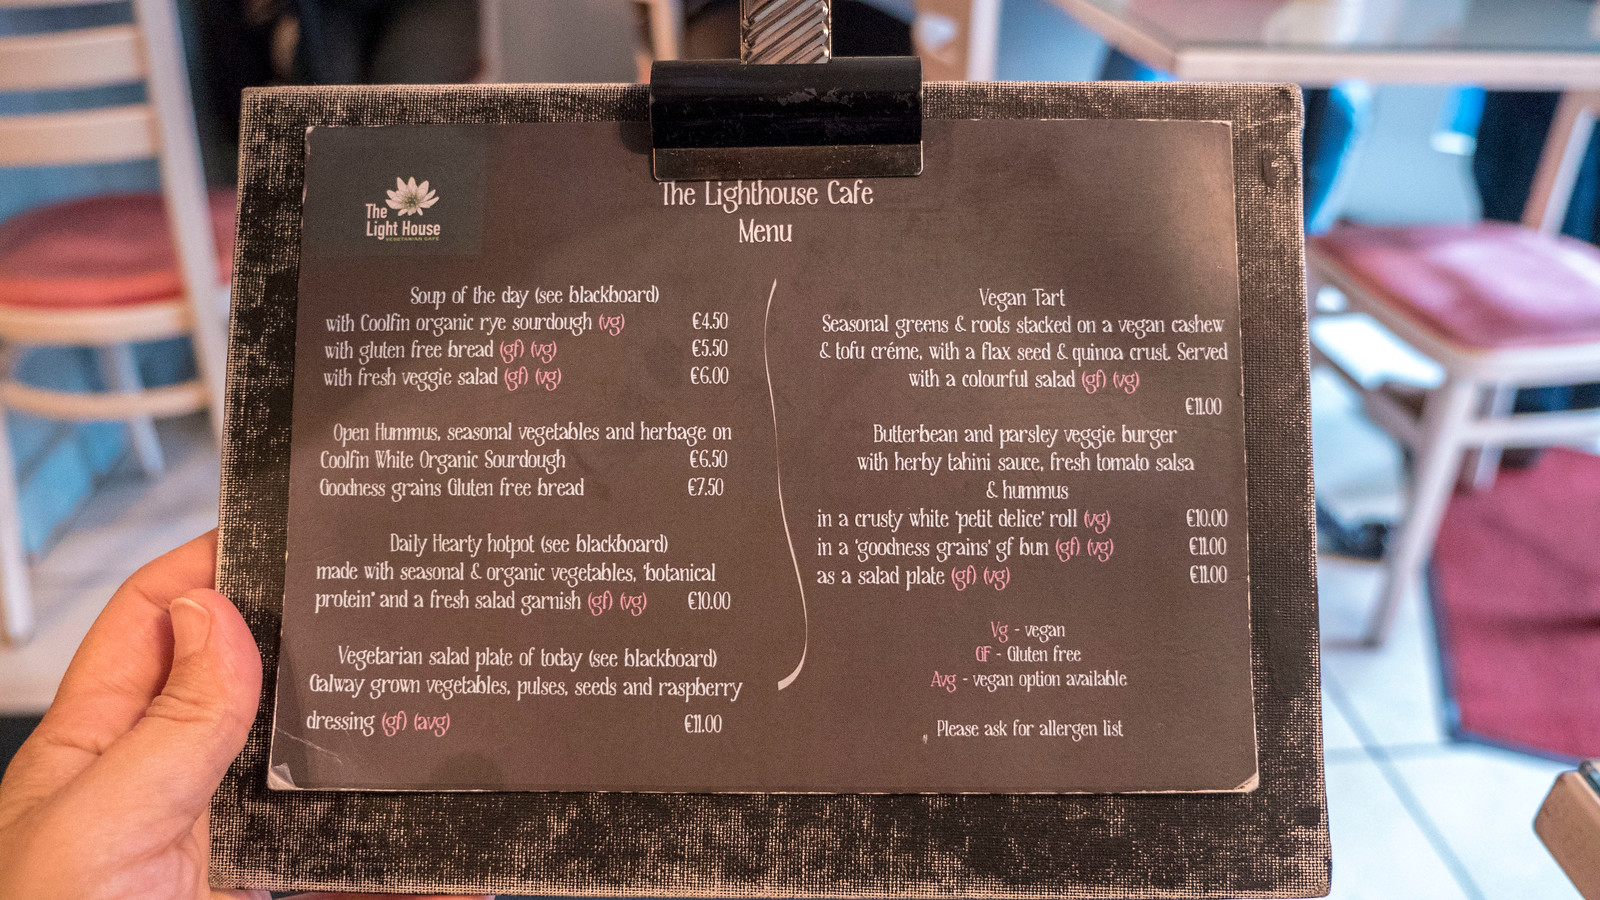 Menu for the Lighthouse Cafe in Galway - Vegan Galway Restaurant and Dining Guide